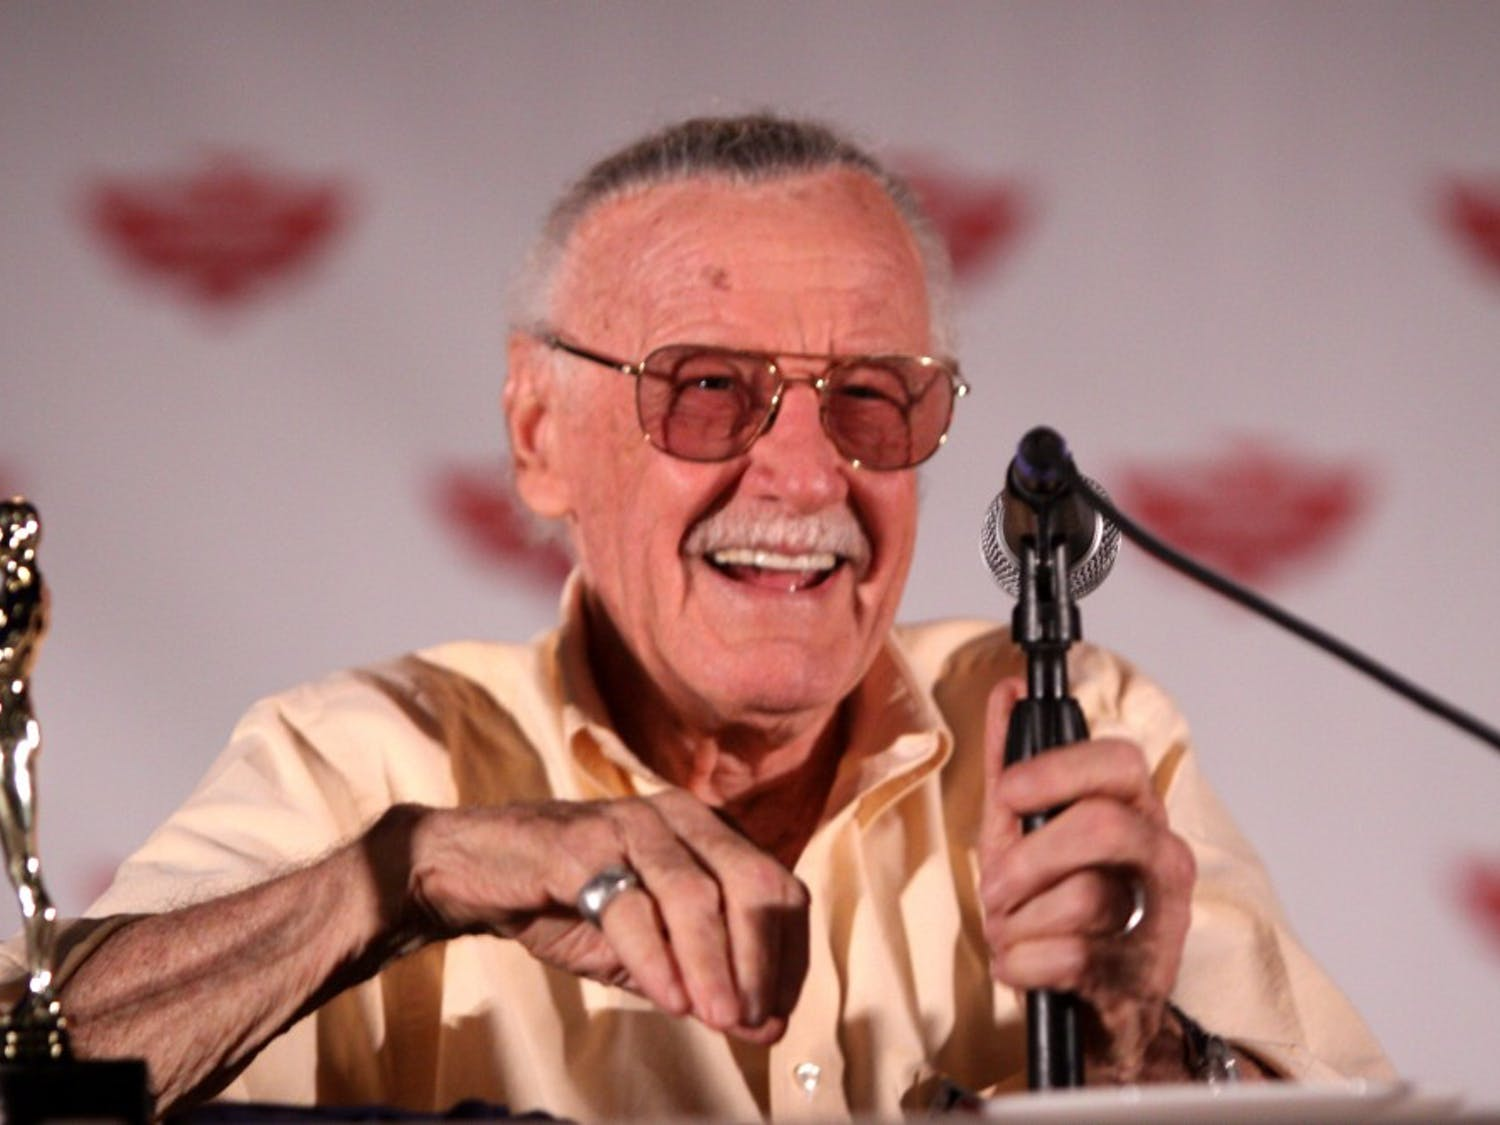 Acclaimed chairman of Marvel Comics has died at 95. Marvel fans look back on his legacy and contributions to the genre.